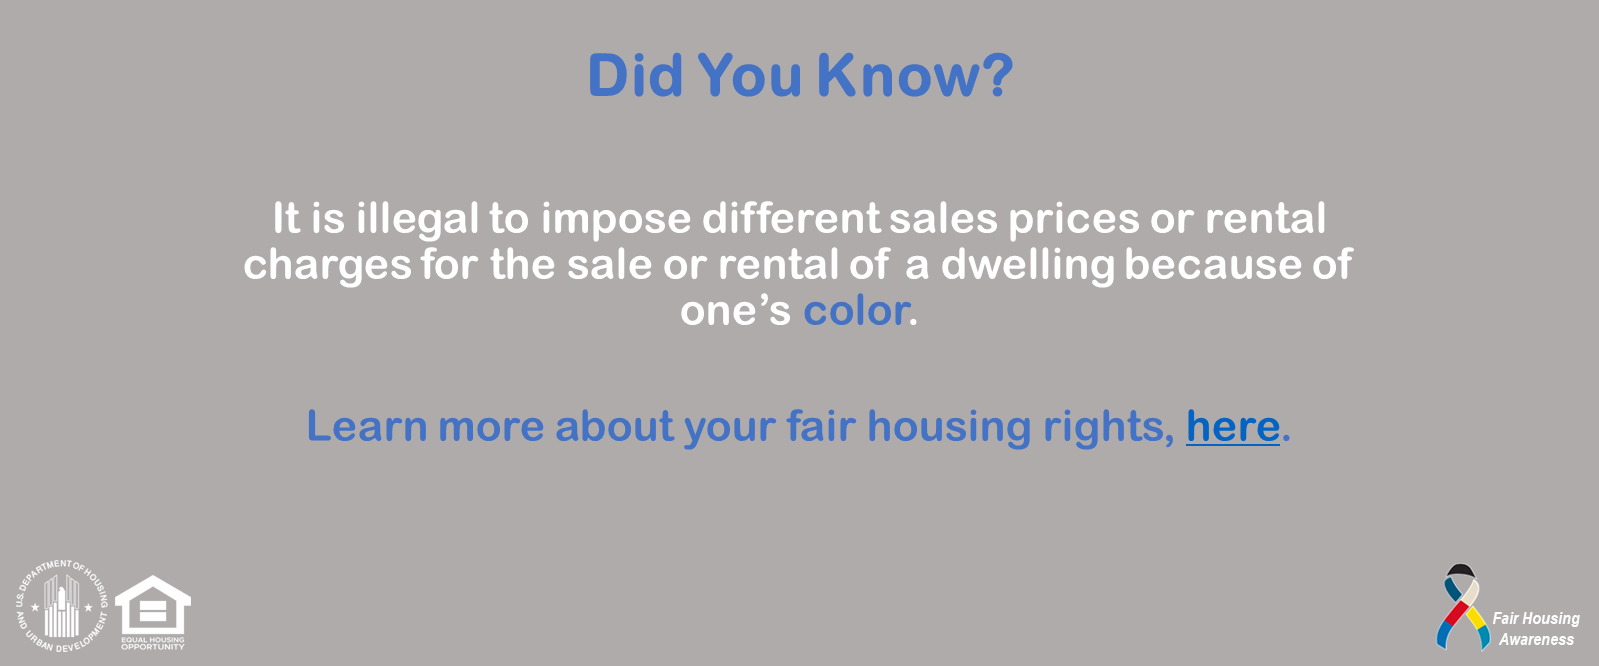 [It is illegal to impose different sales prices or rental charges for the sale or rental of a dwelling because of one's color.]. HUD Photo